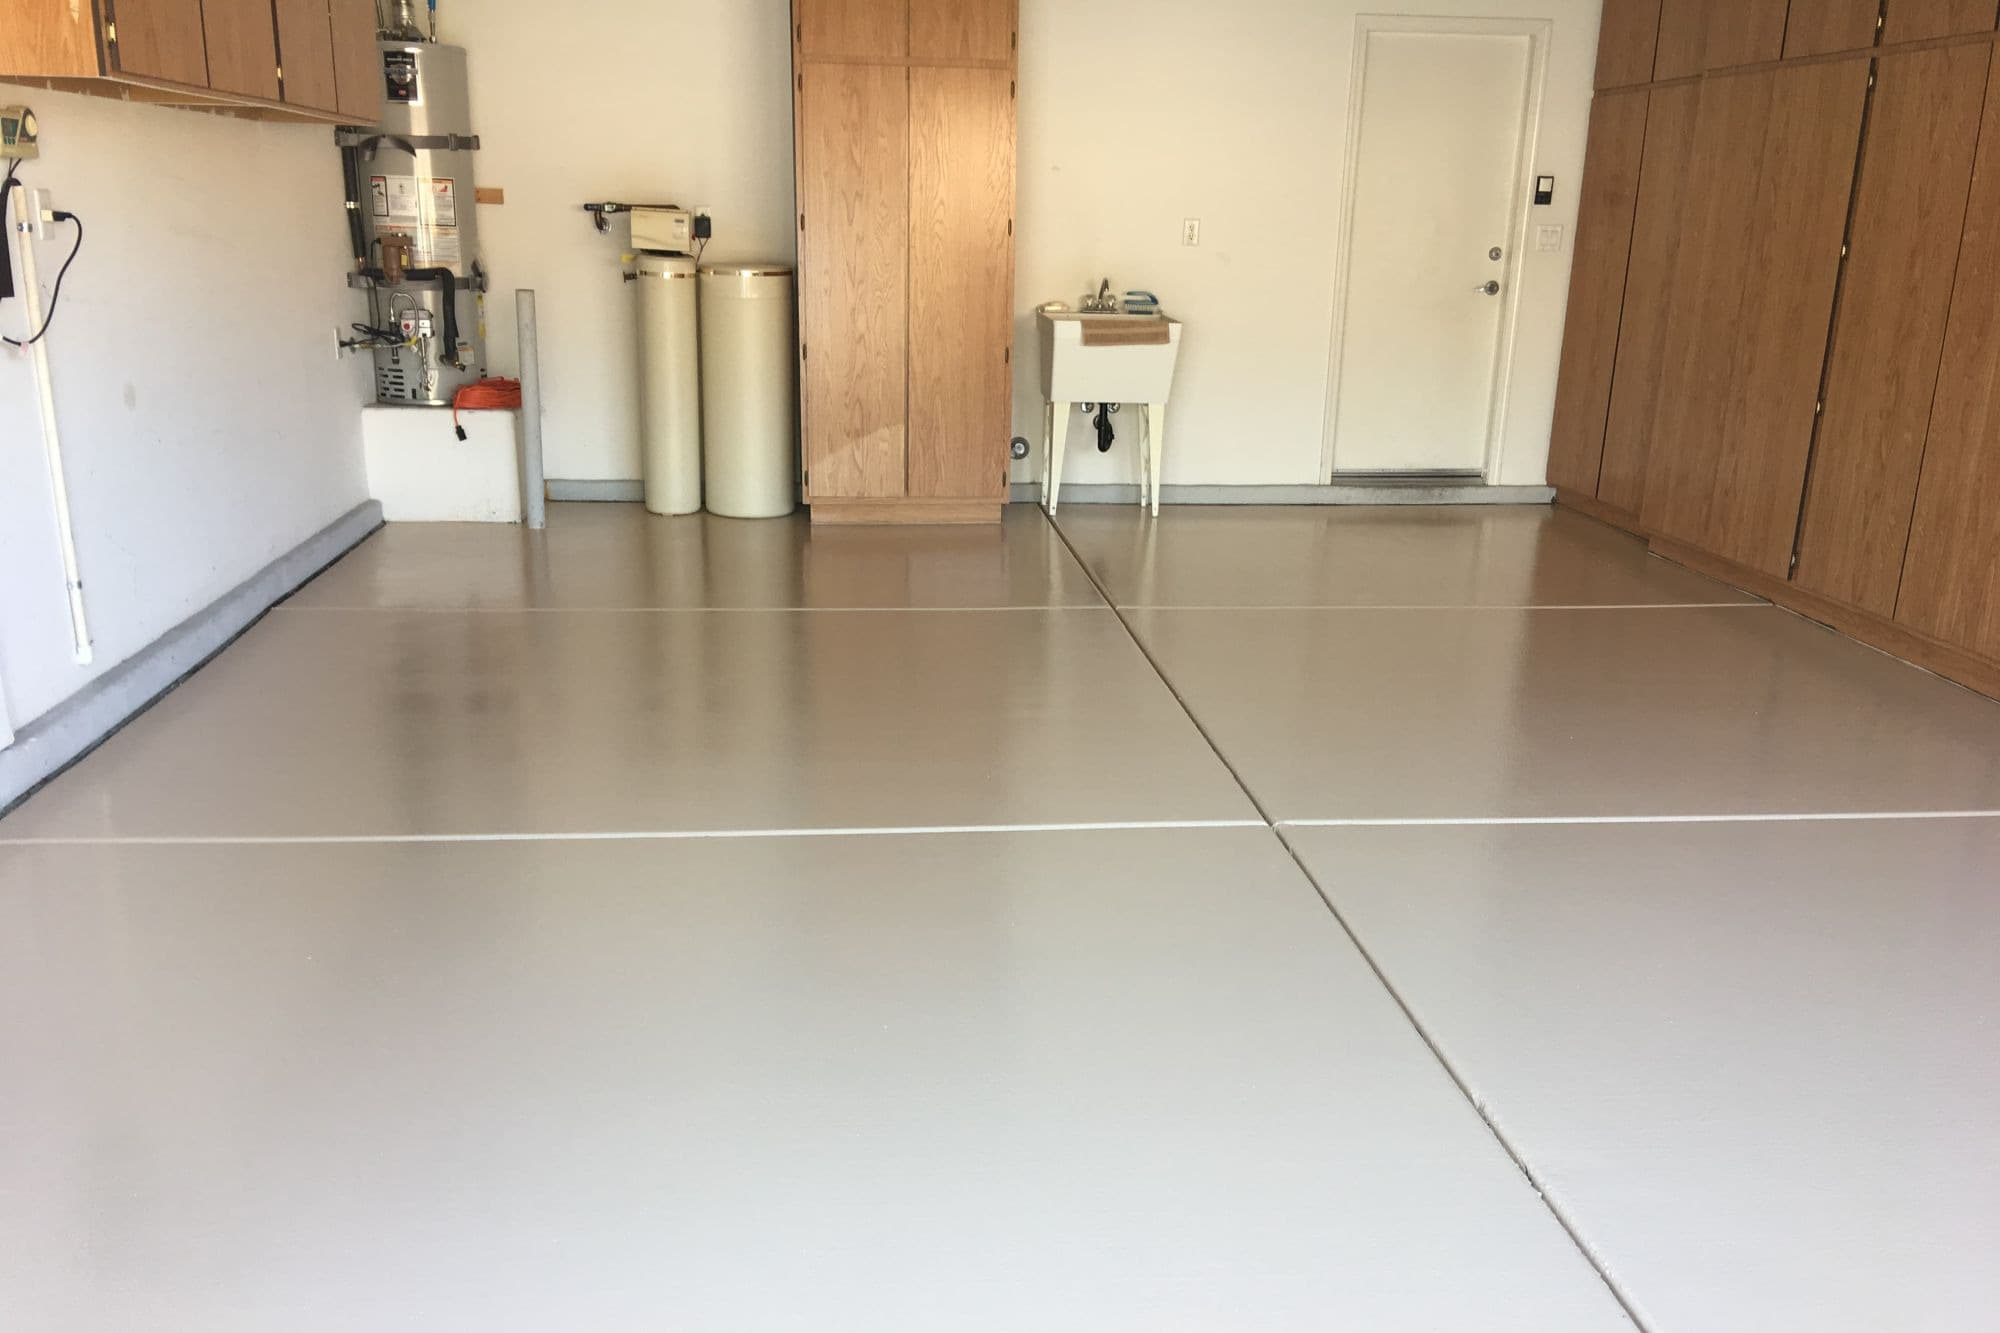 Garage Epoxy Coating One Solid Color Dc Painting Llc